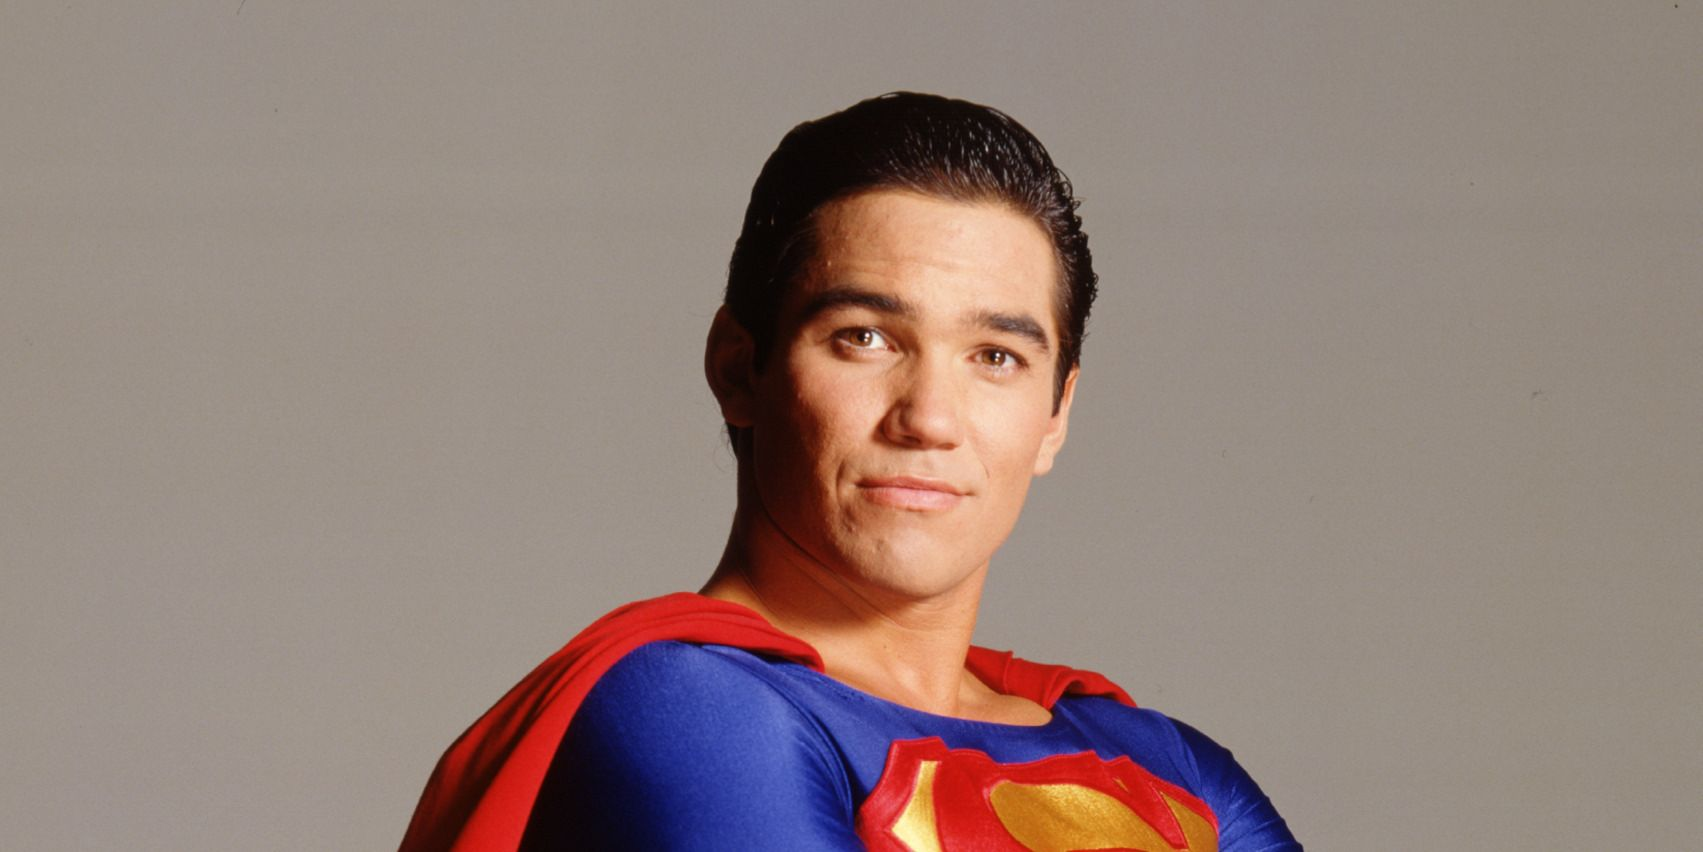 Dean Cain in Lois & Clark: The New Adventures of Superman